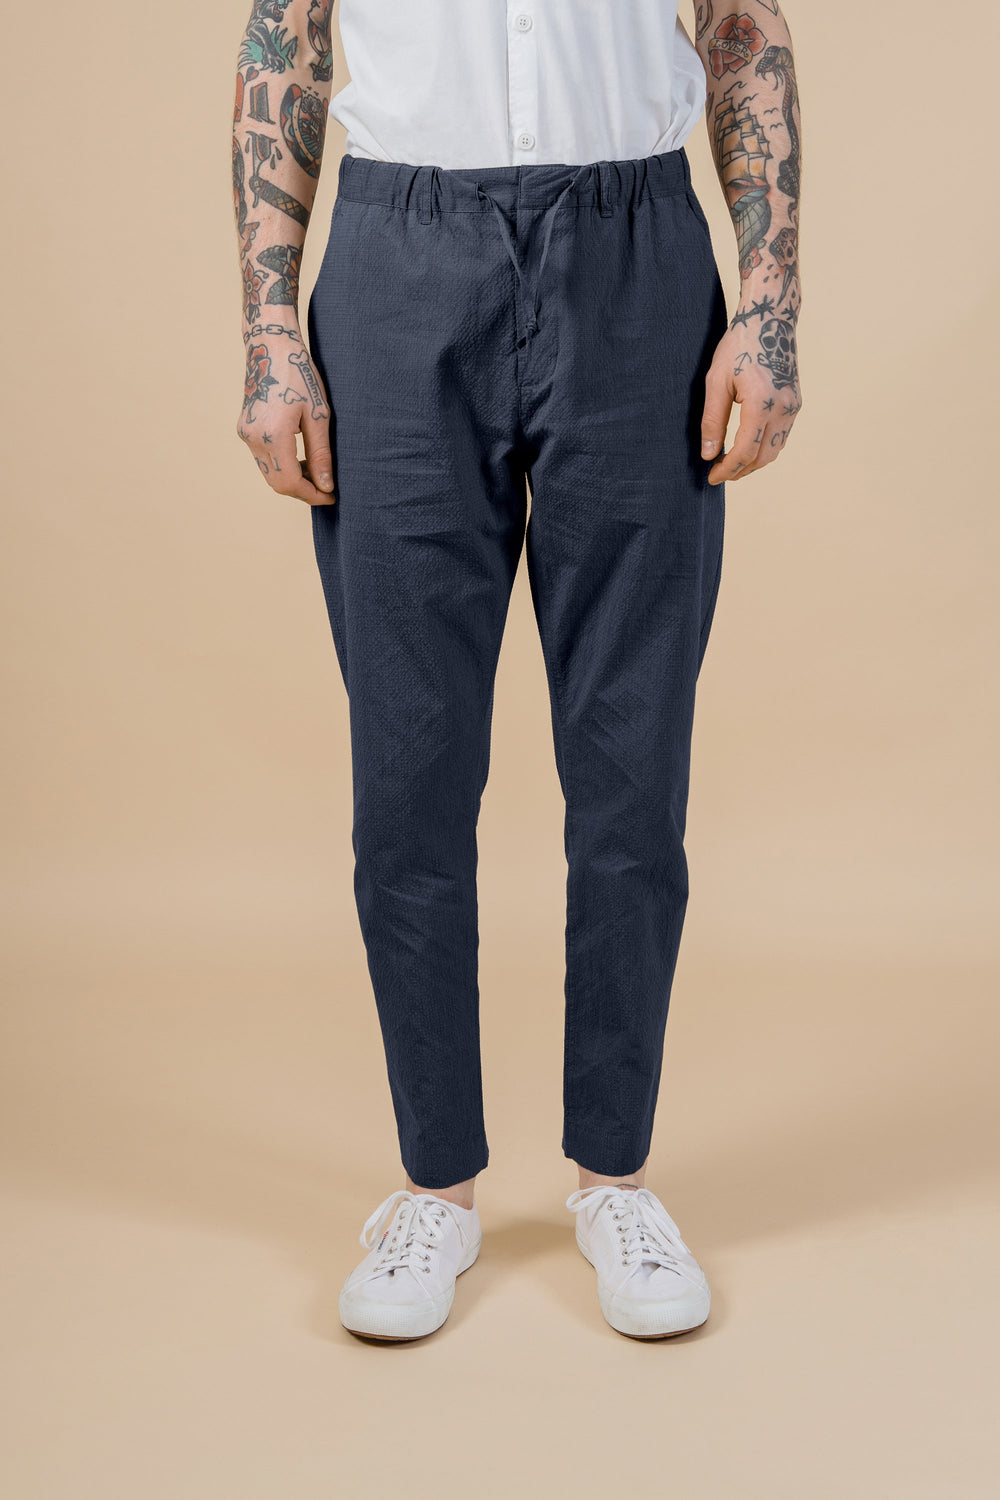 Kestin Hare Inverness Trousers in Navy Check